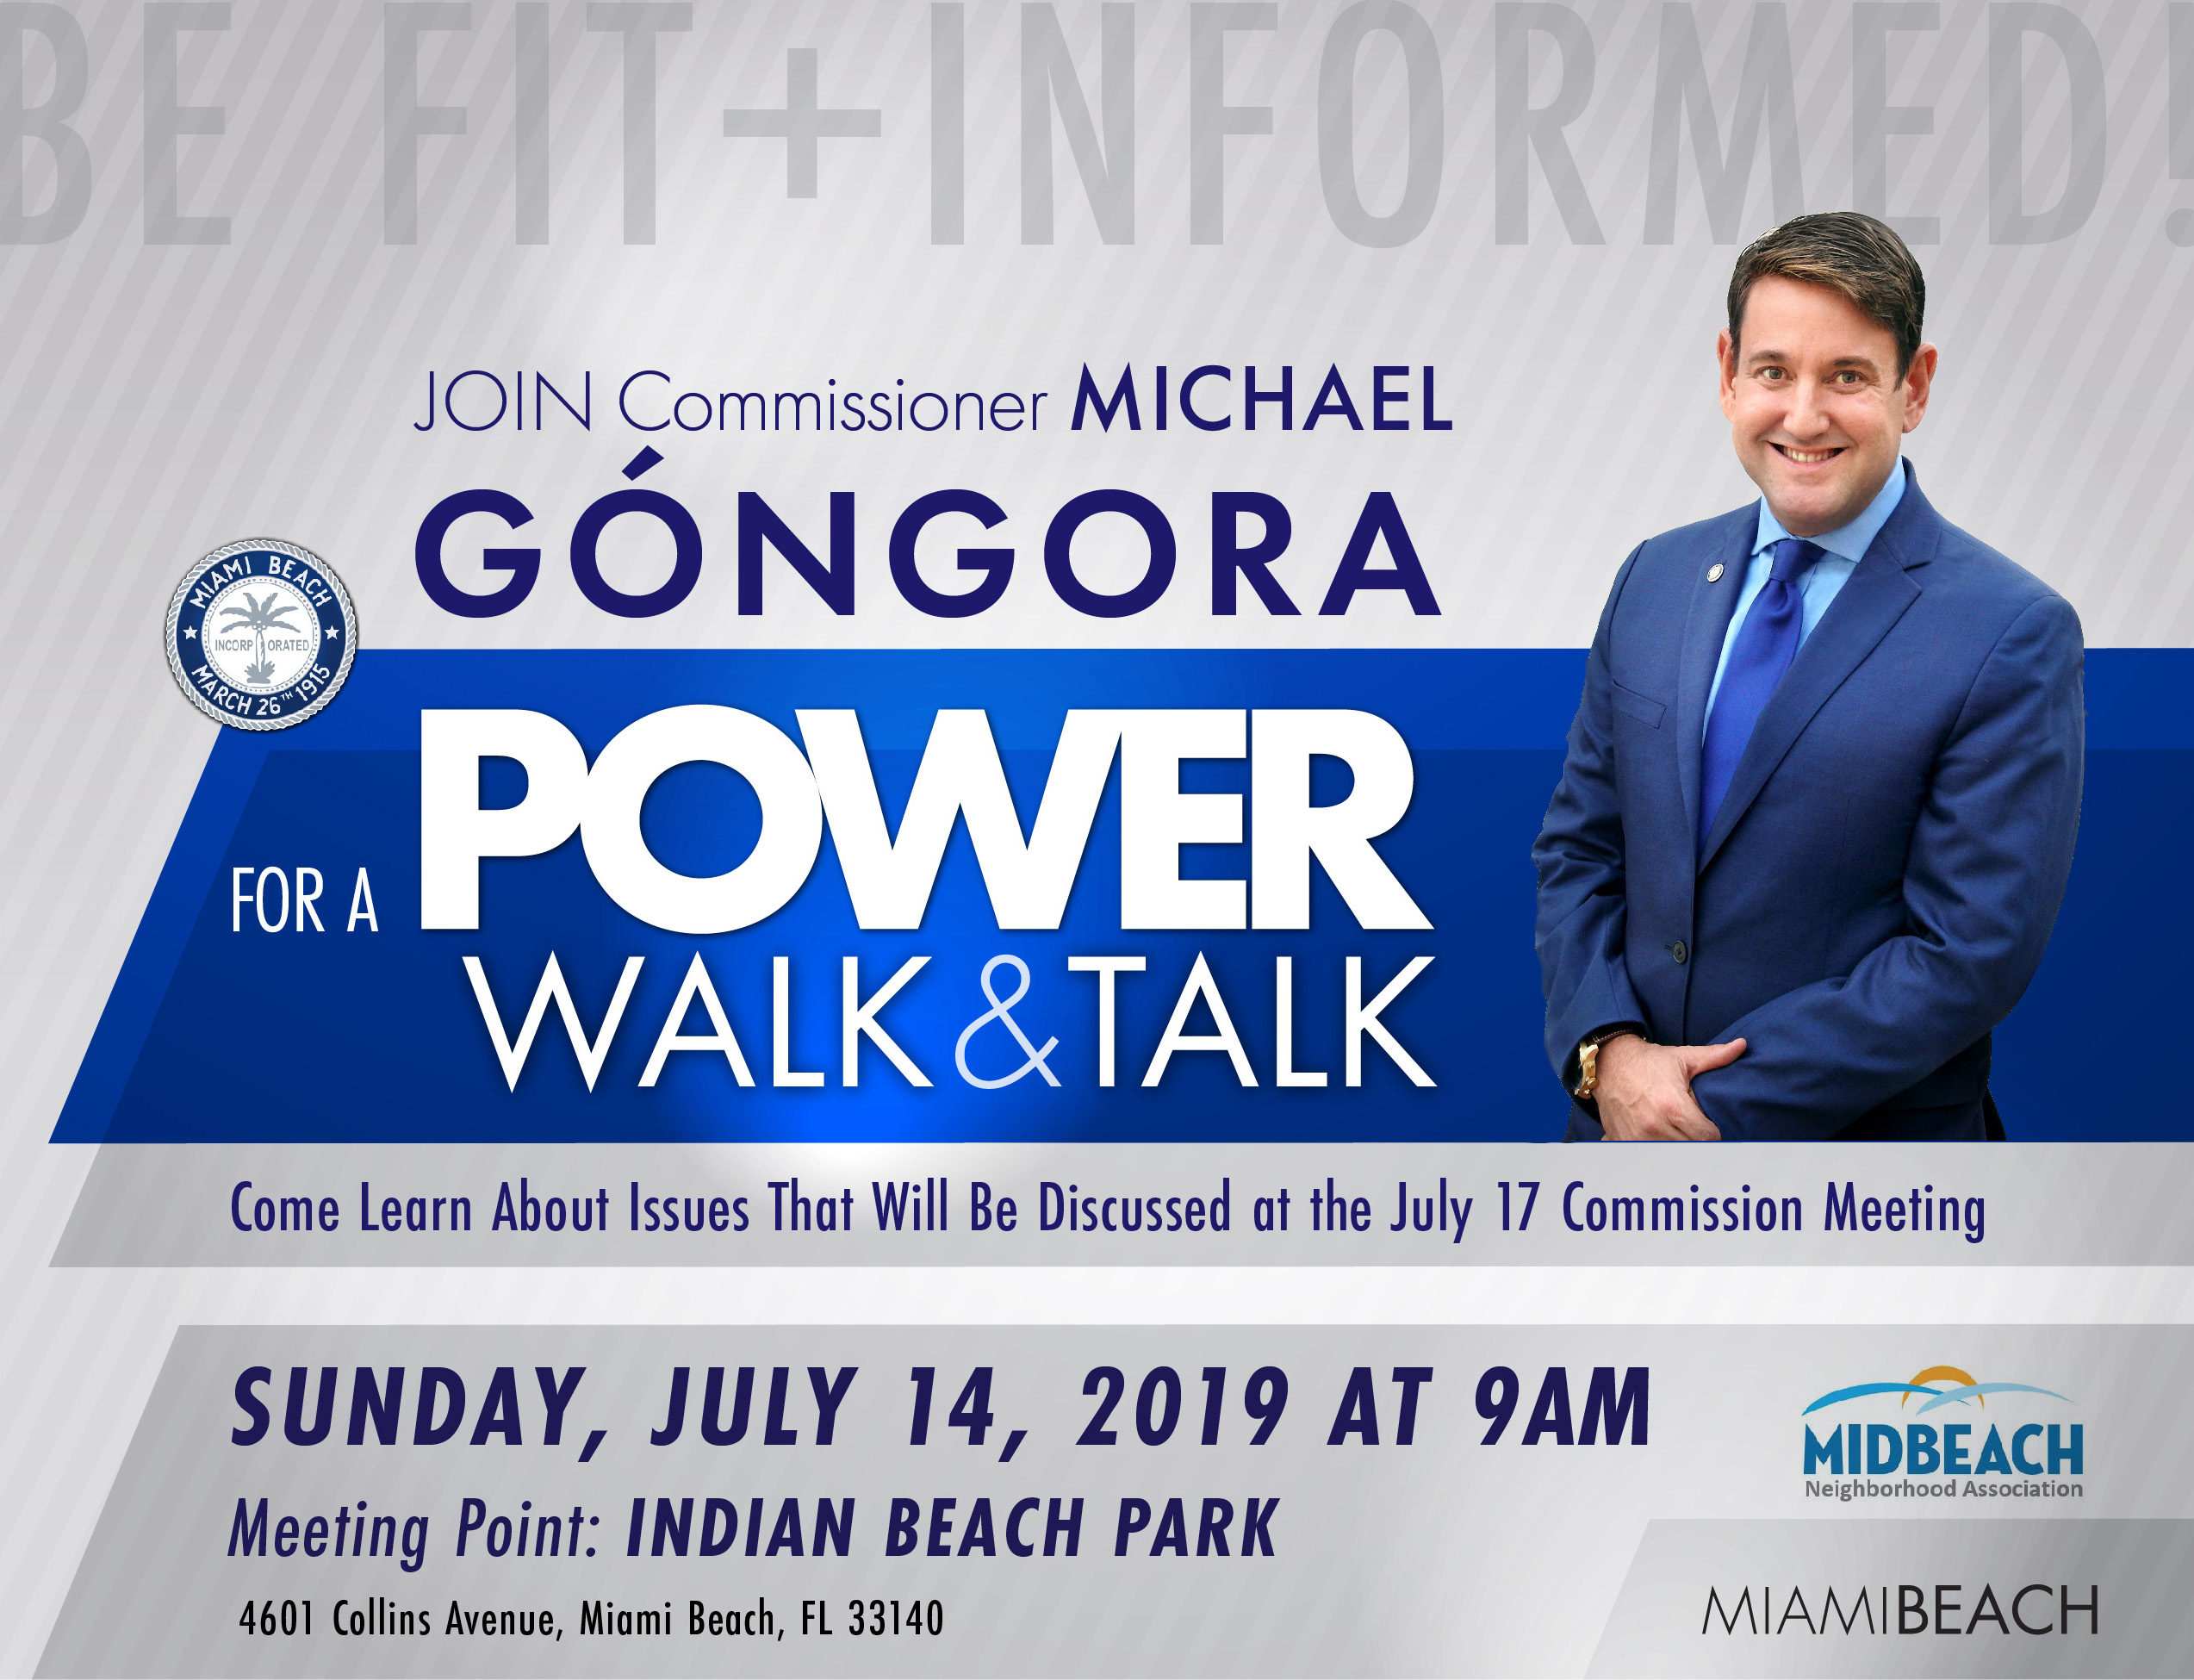 Power Walk & Talk with Commissioner Góngora